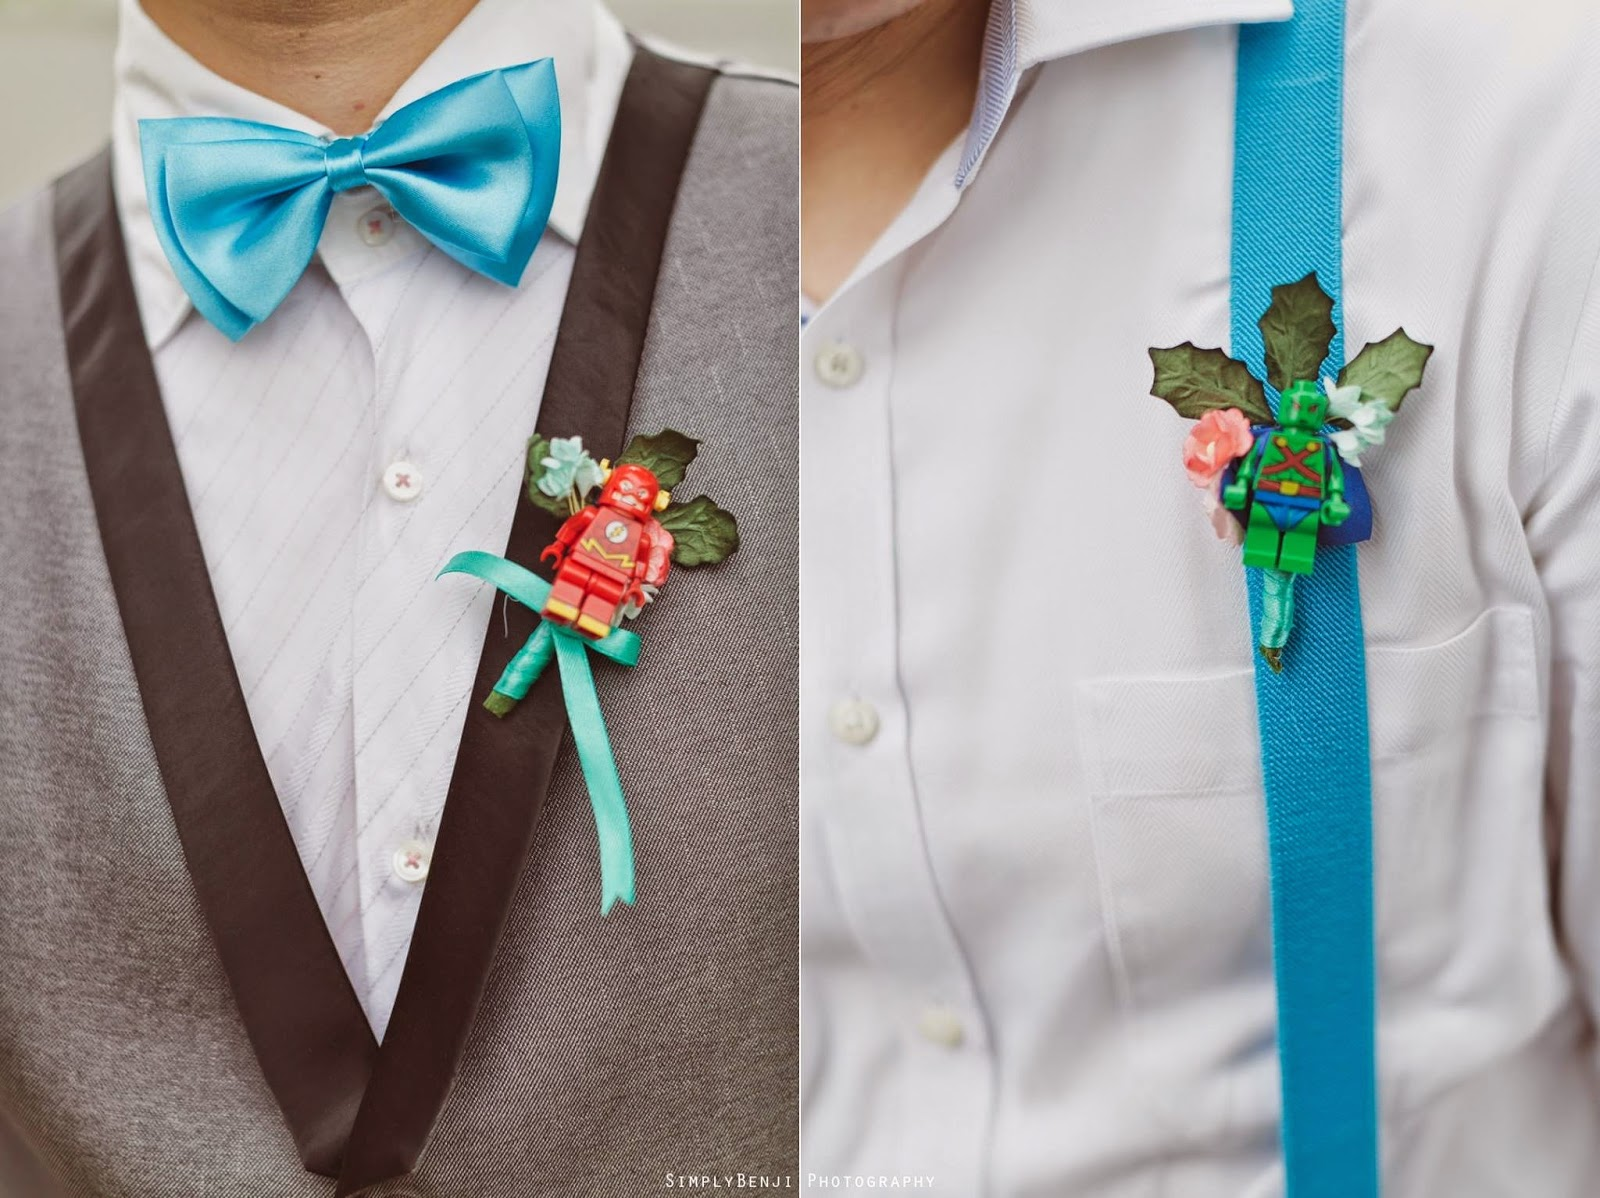 blue bow tie ribbon toy